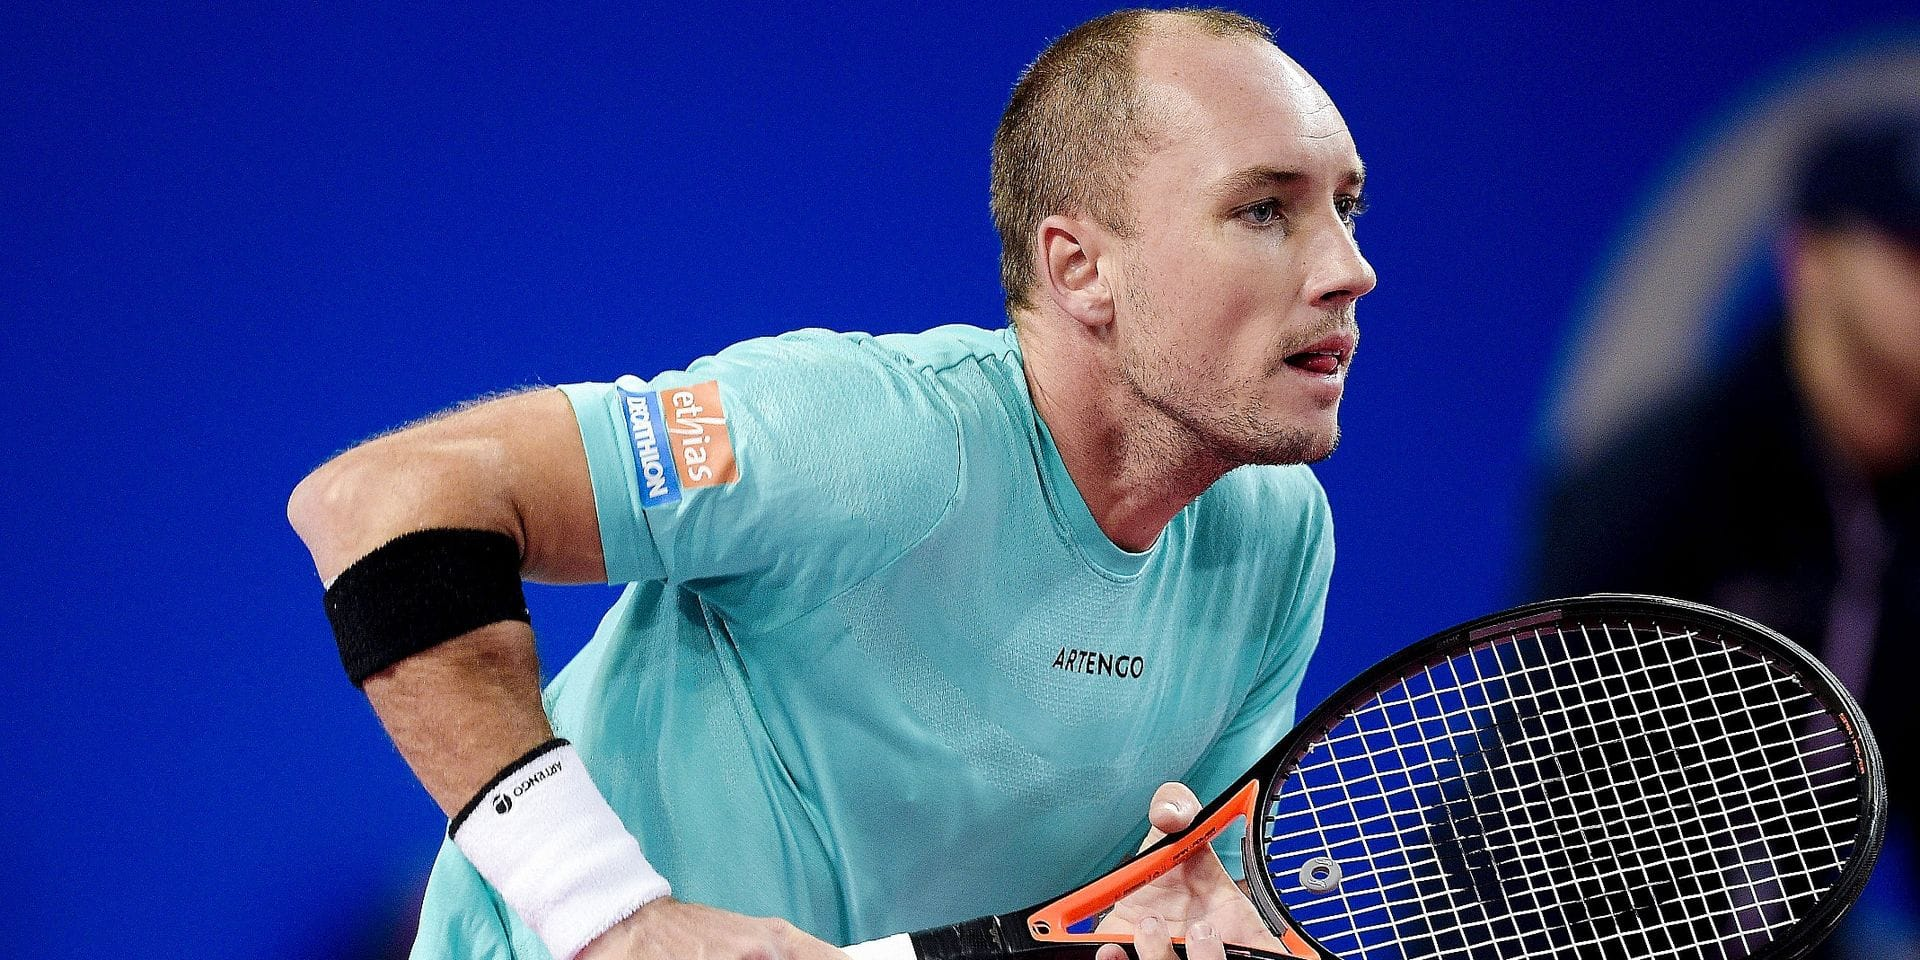 Steve Darcis (Bel) TENNIS : Open Sud de France 2019 - Montpellier - 05/02/2019 © PanoramiC / PHOTO NEWS PICTURES NOT INCLUDED IN THE CONTRACTS ! only BELGIUM !